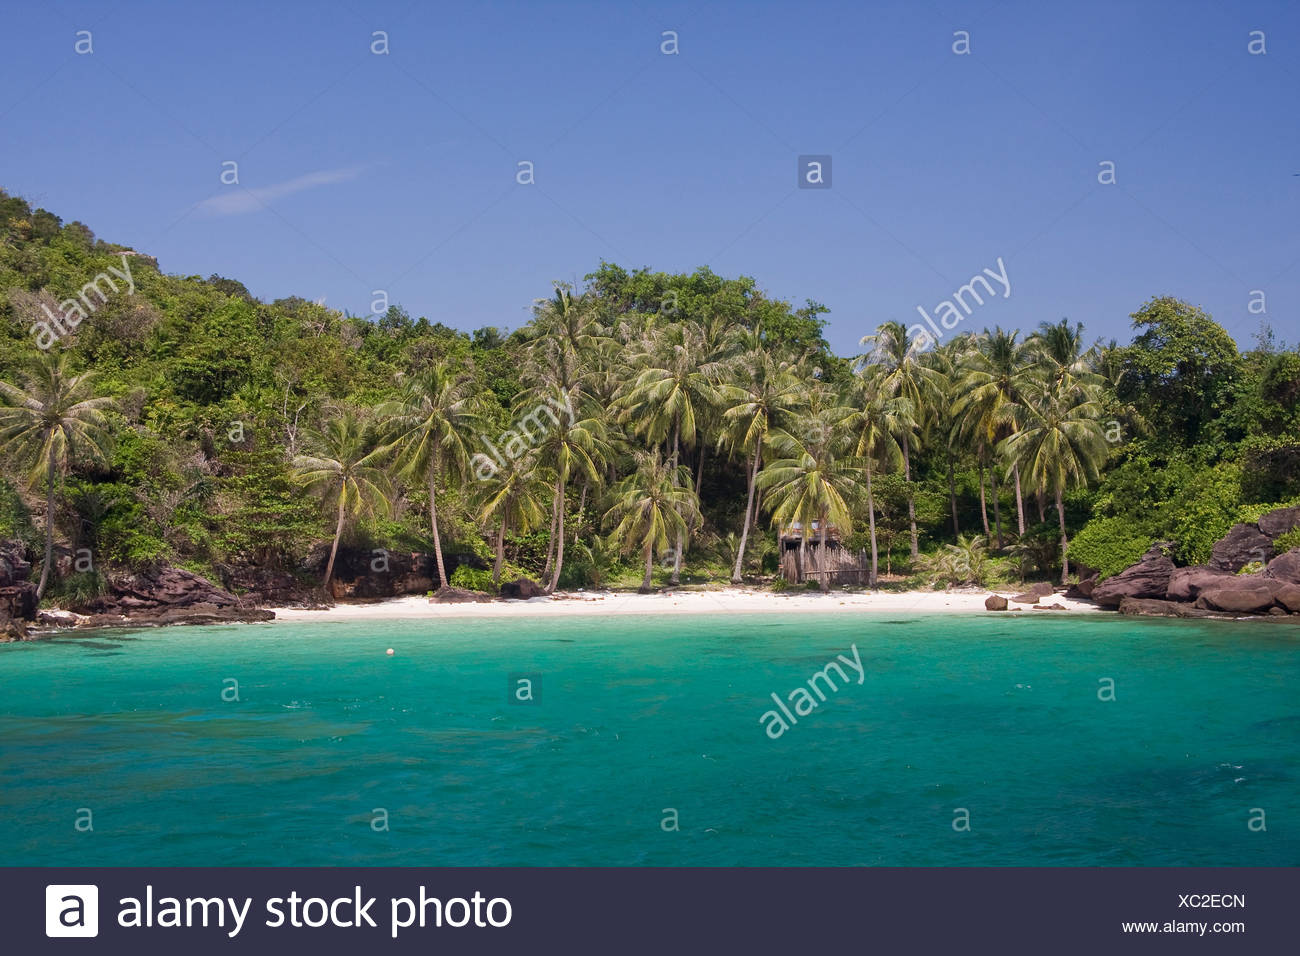 ambiance ambient beach dream dream-like heavenly holiday island like Long outdoor palm Phu Quoc sandy sea asia Vietnam - Stock Image